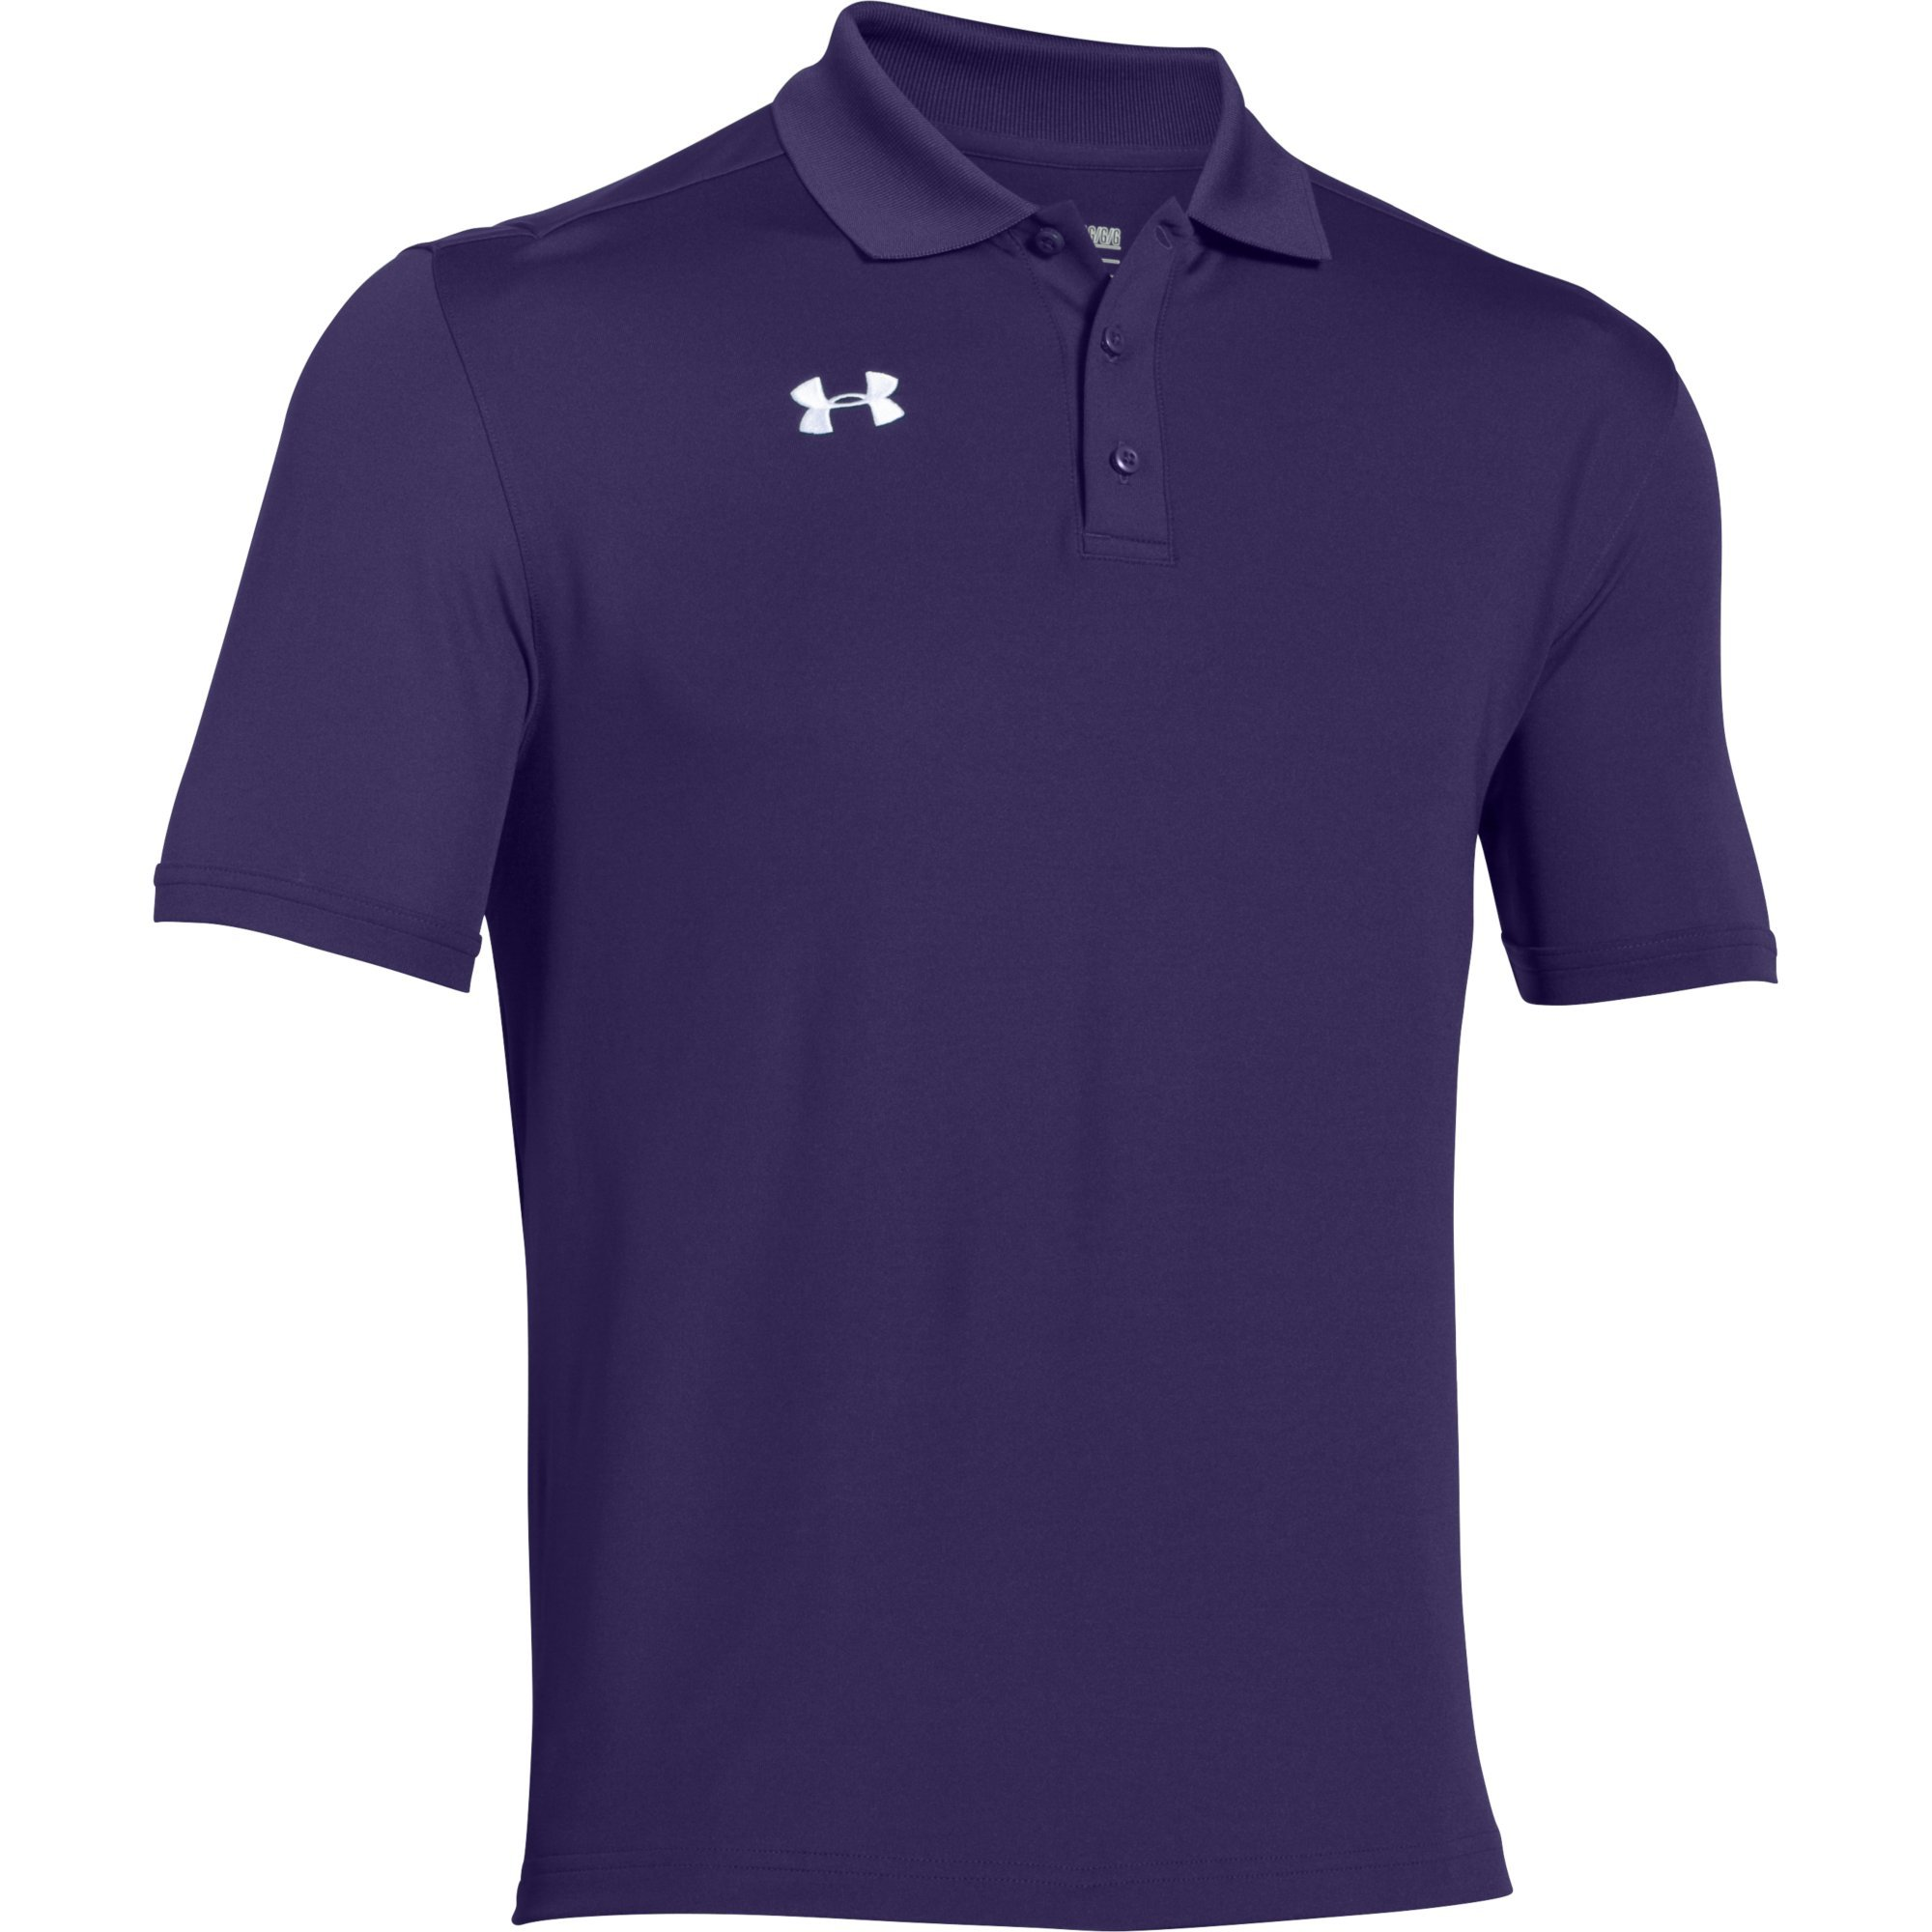 Under Armour Men's Team Armour Polo (4X-Large, Purple) by Under Armour (Image #1)